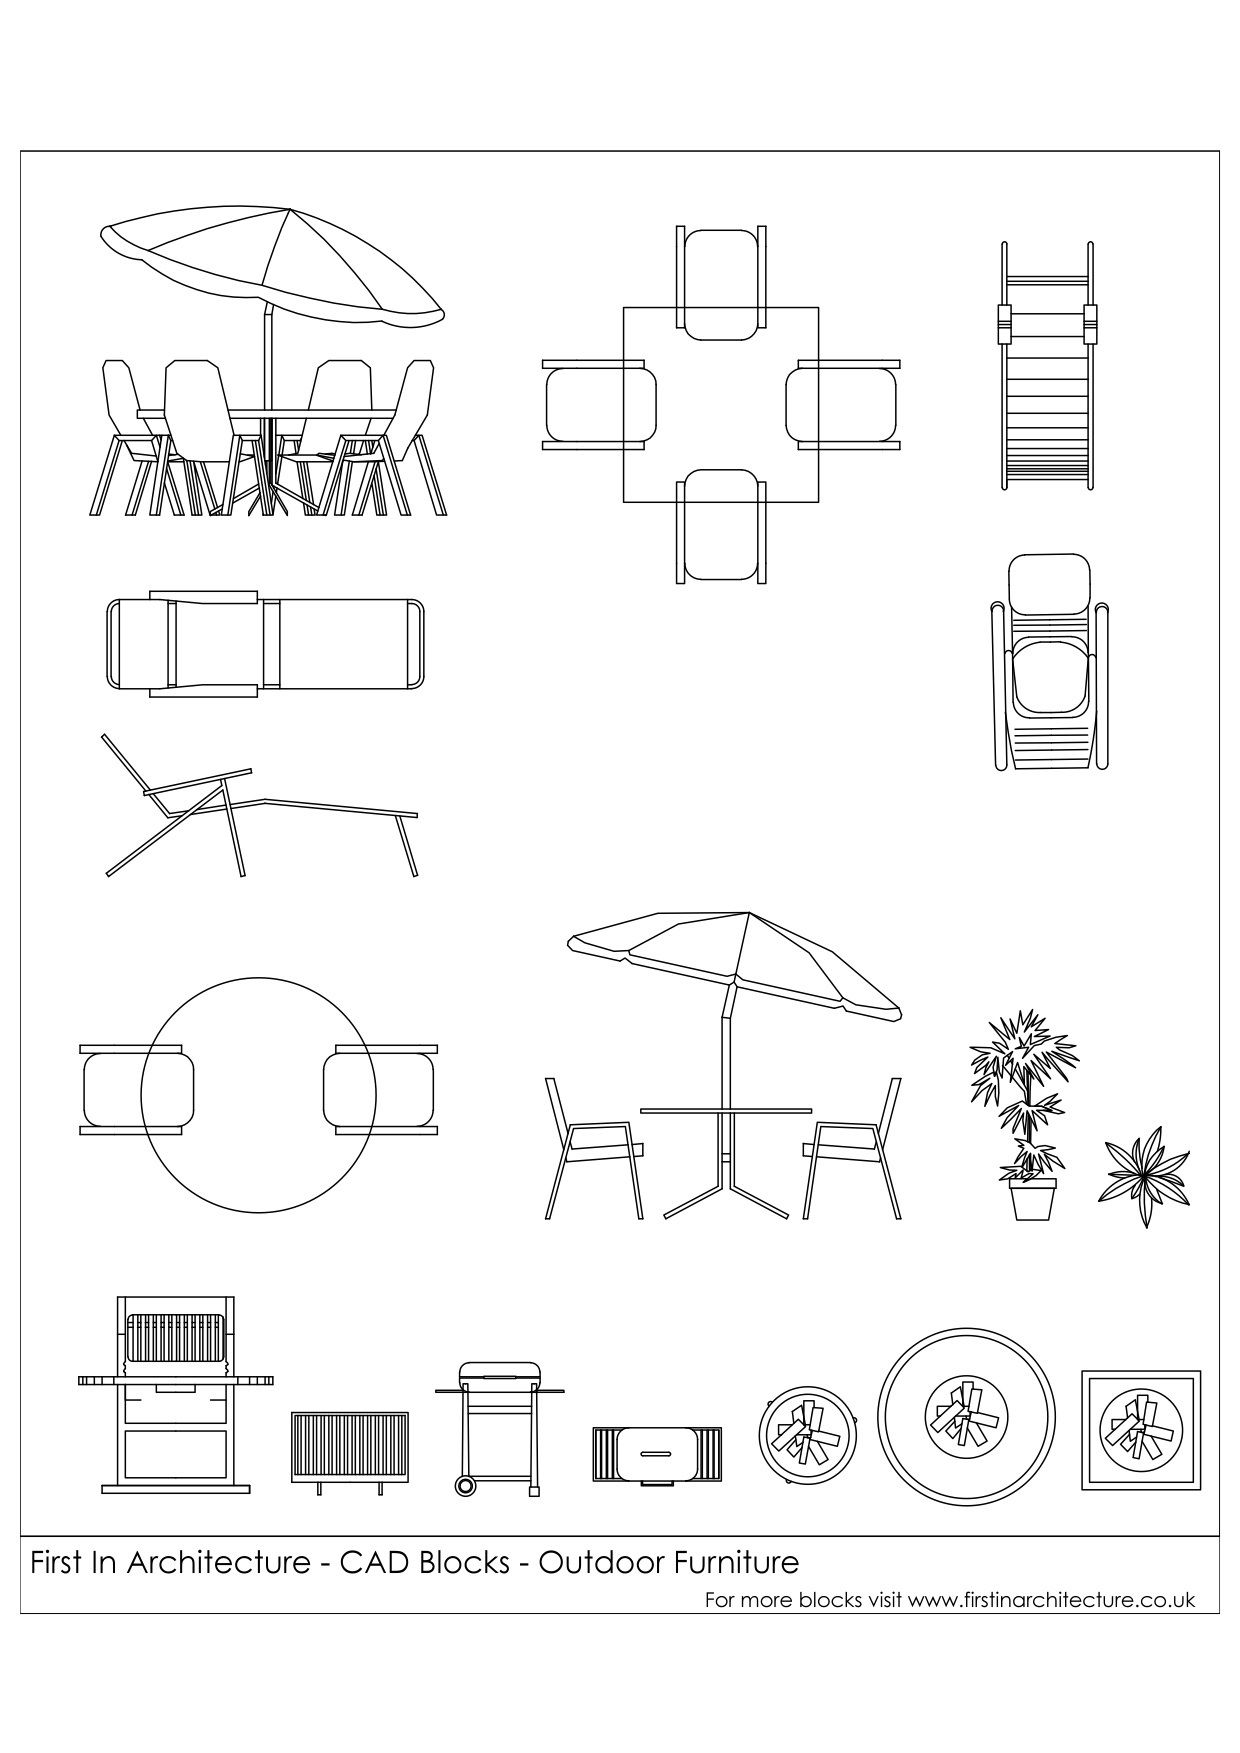 Free Cad Blocks Outdoor Furniture 02 Pinterest Representa O